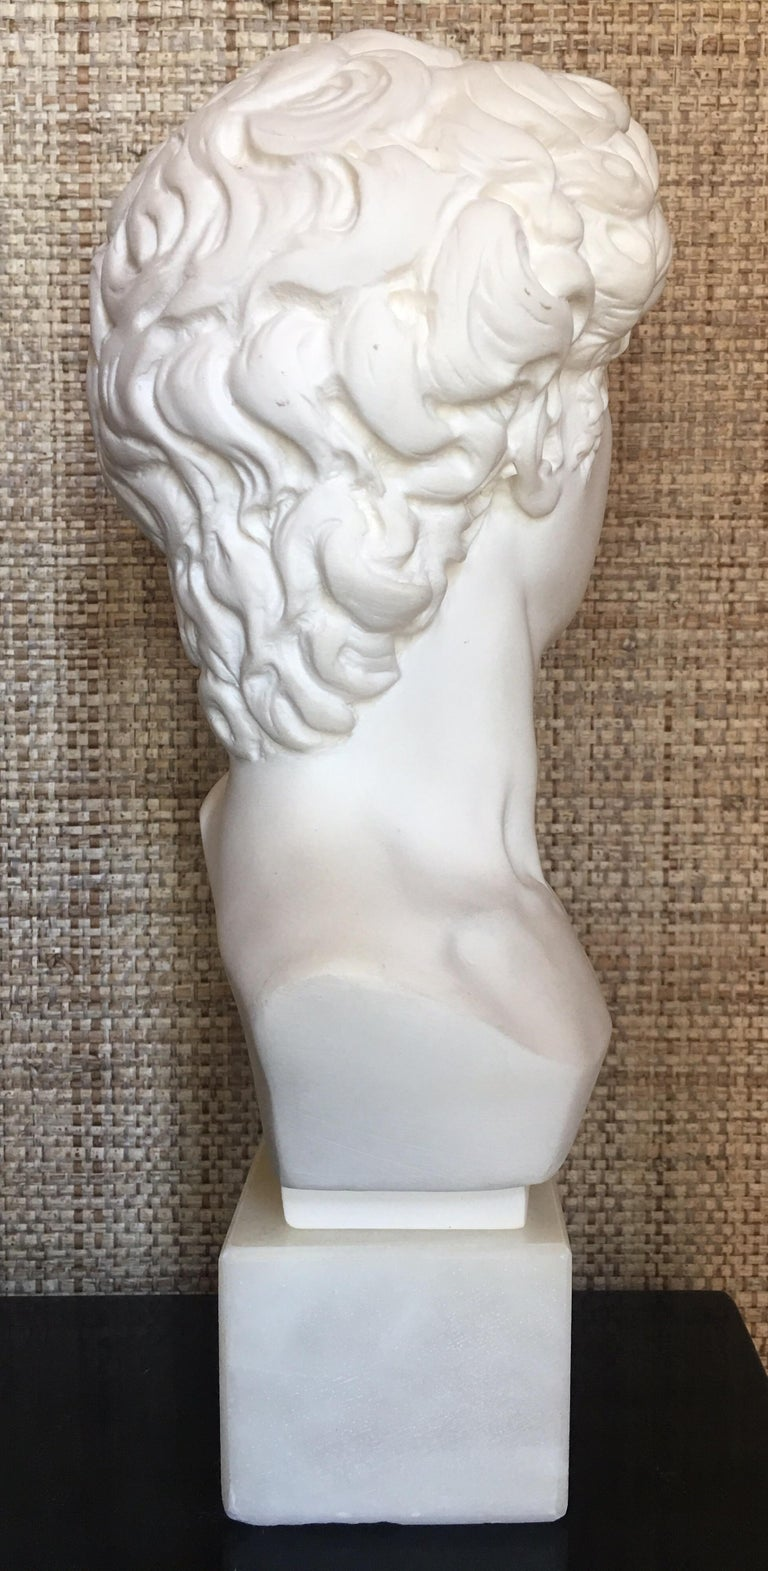 Hollywood Regency Plaster and Alabaster Marble Bust Sculpture by Giuseppe Bessi, Italy For Sale